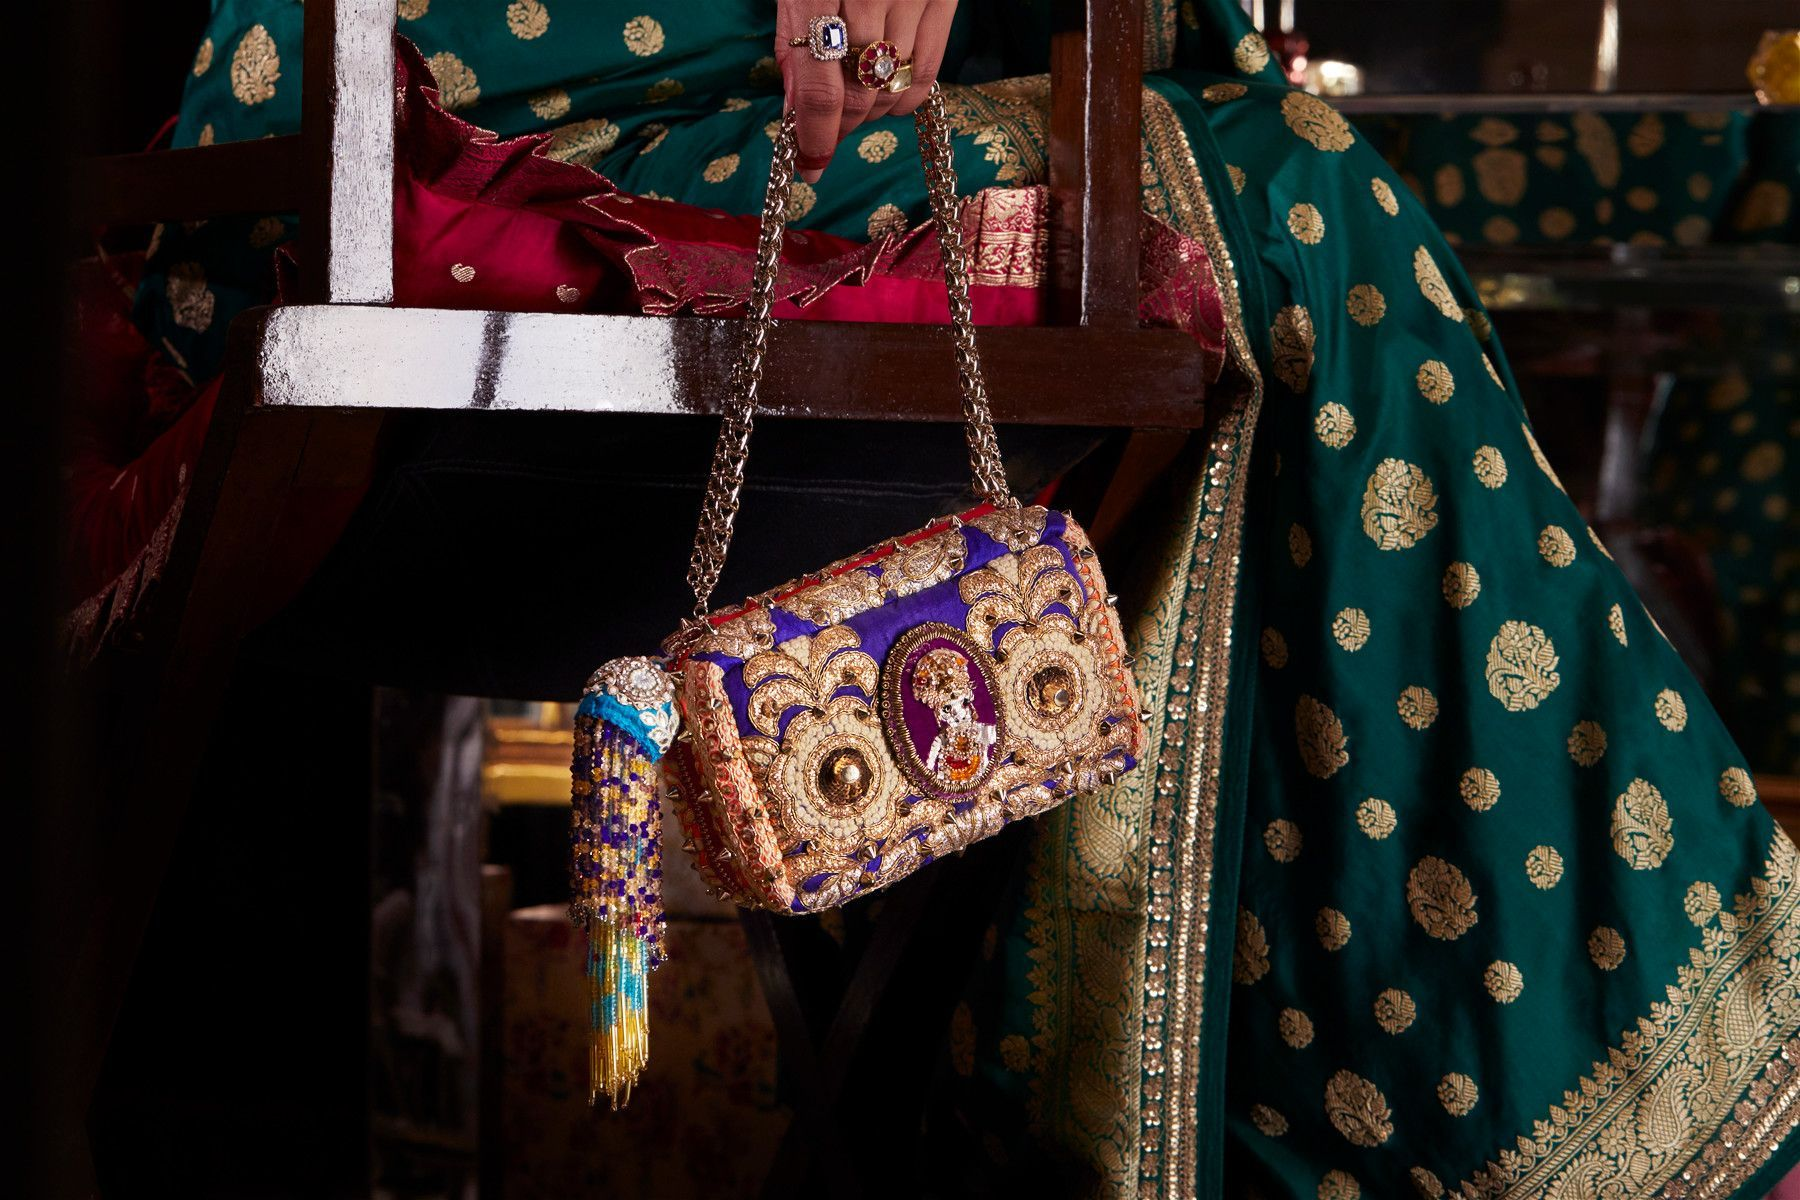 JPG-CL_17_FW_Sabyasachi_Products_Guillaume-Fandel 2